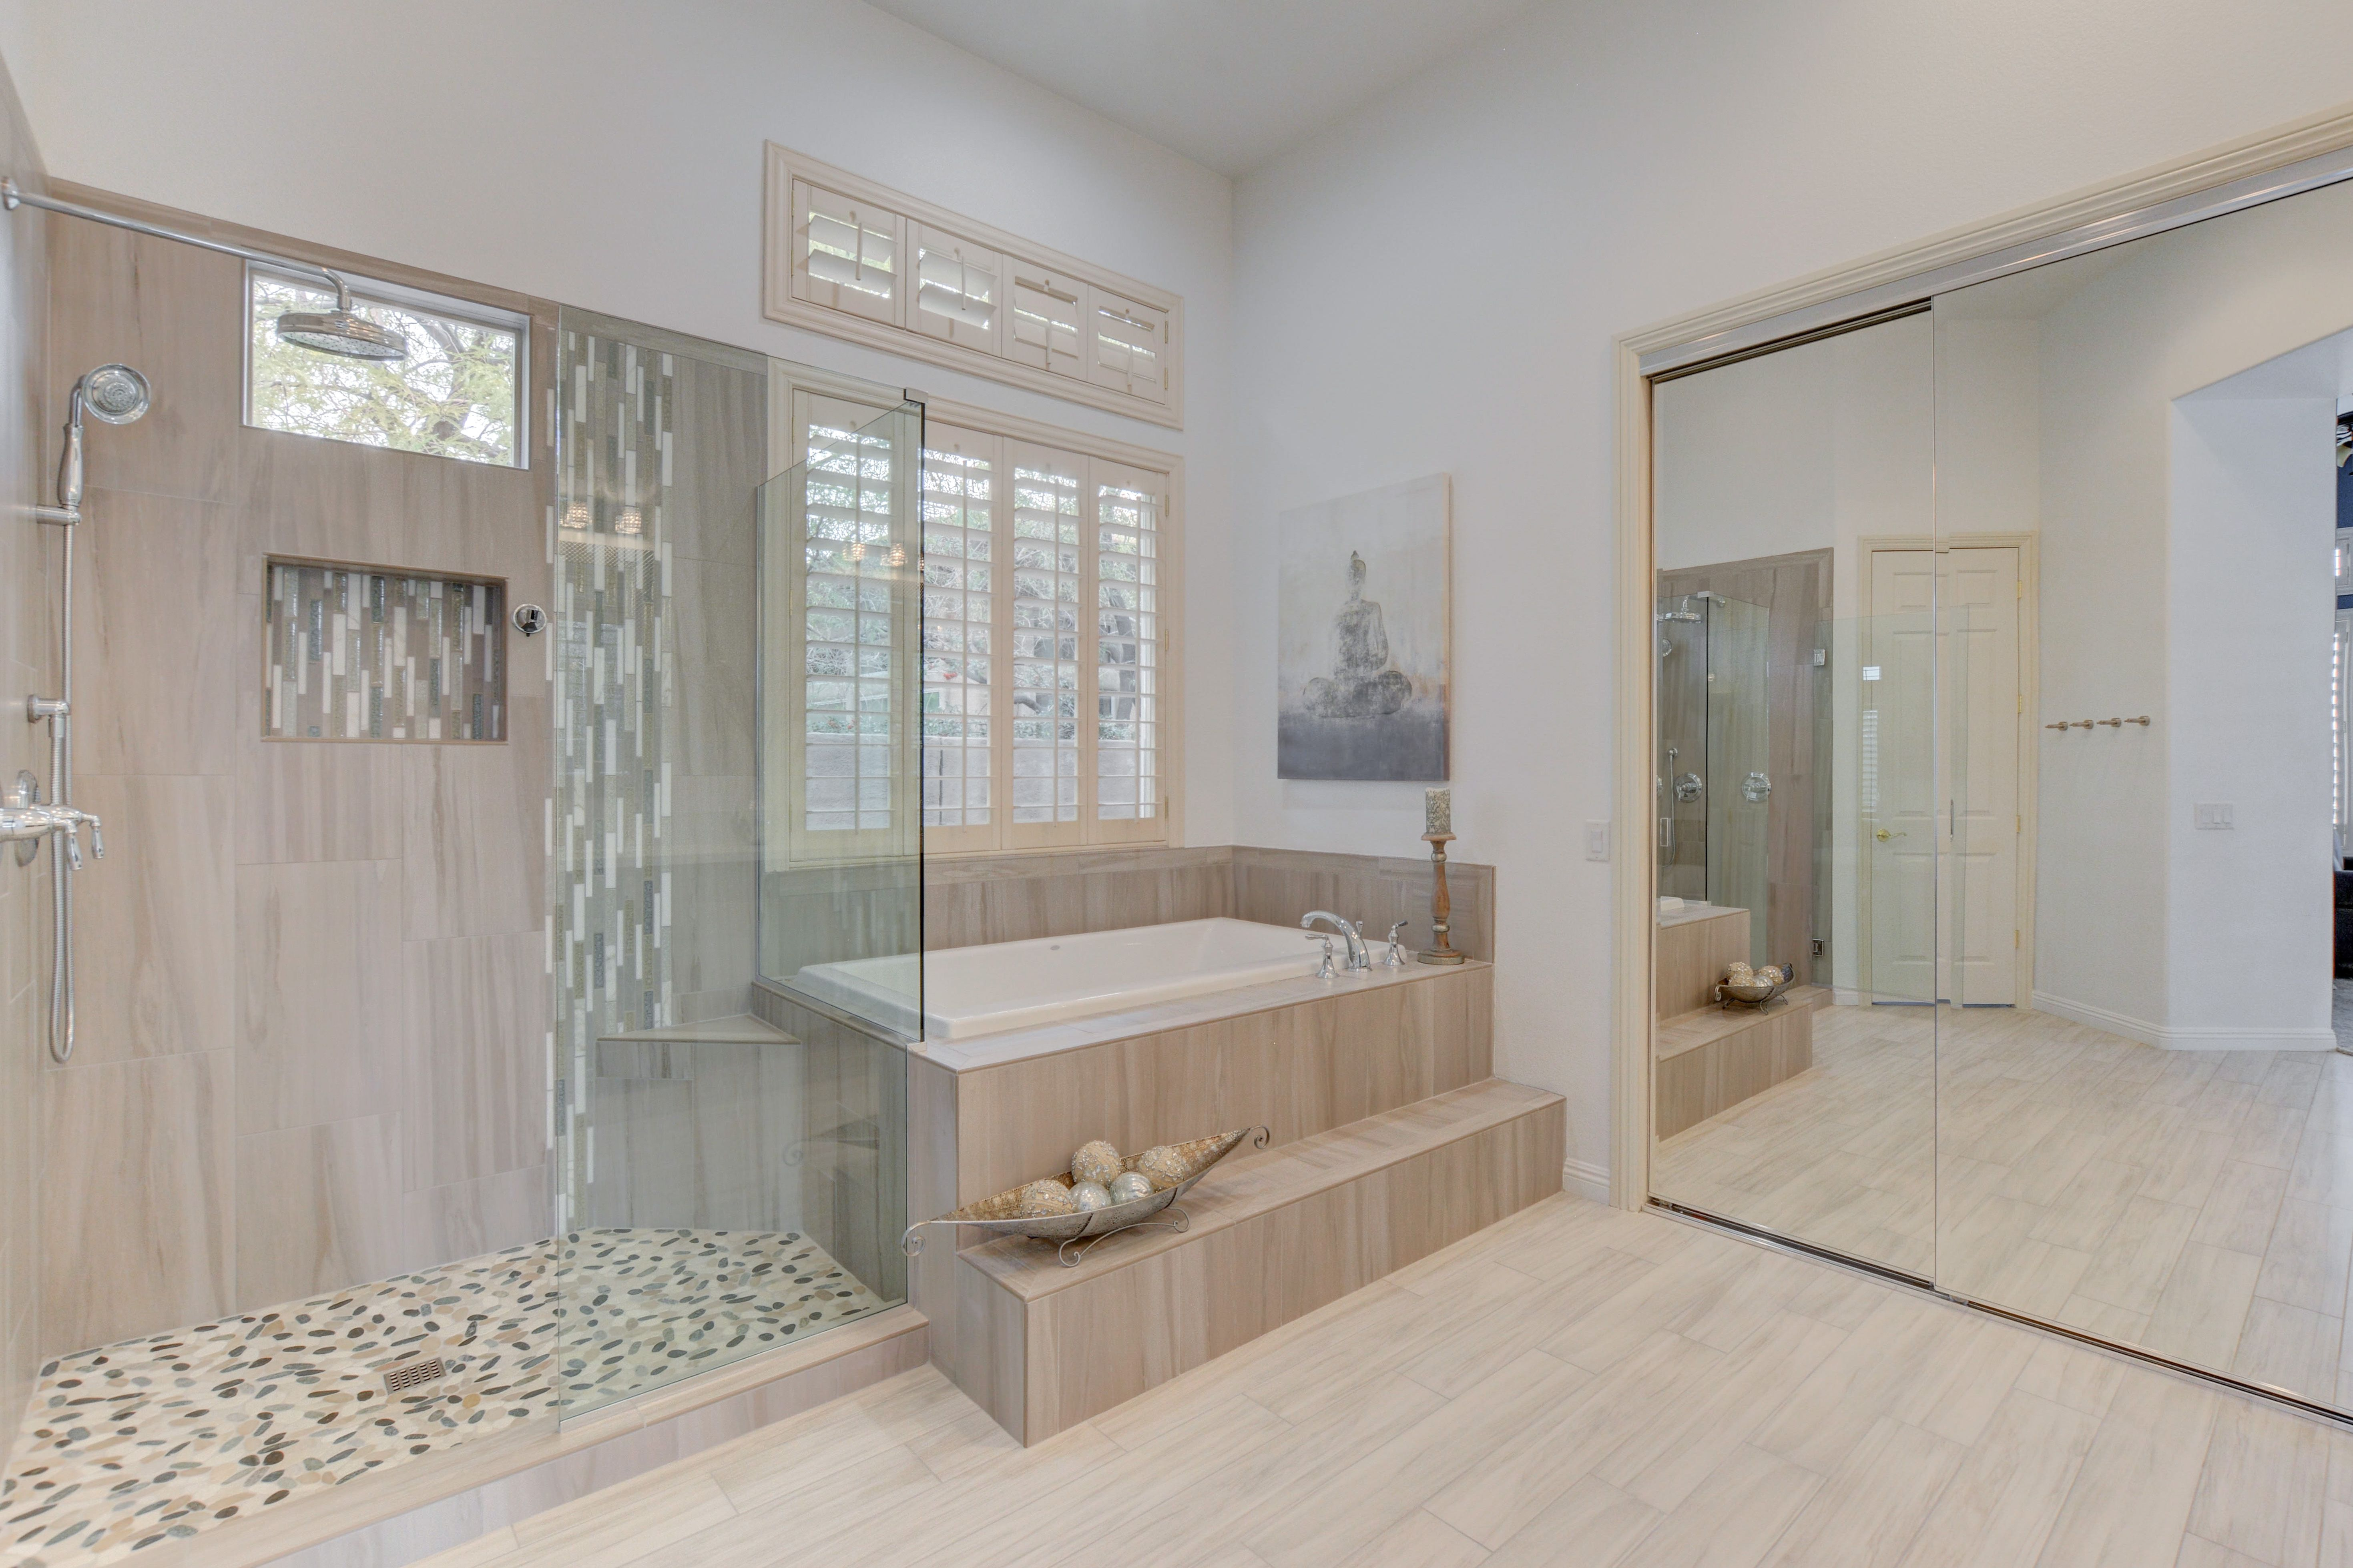 Luxurious Zen Master Bathroom By Las Vegas Remodel Construction - Bathroom remodeling las vegas nv